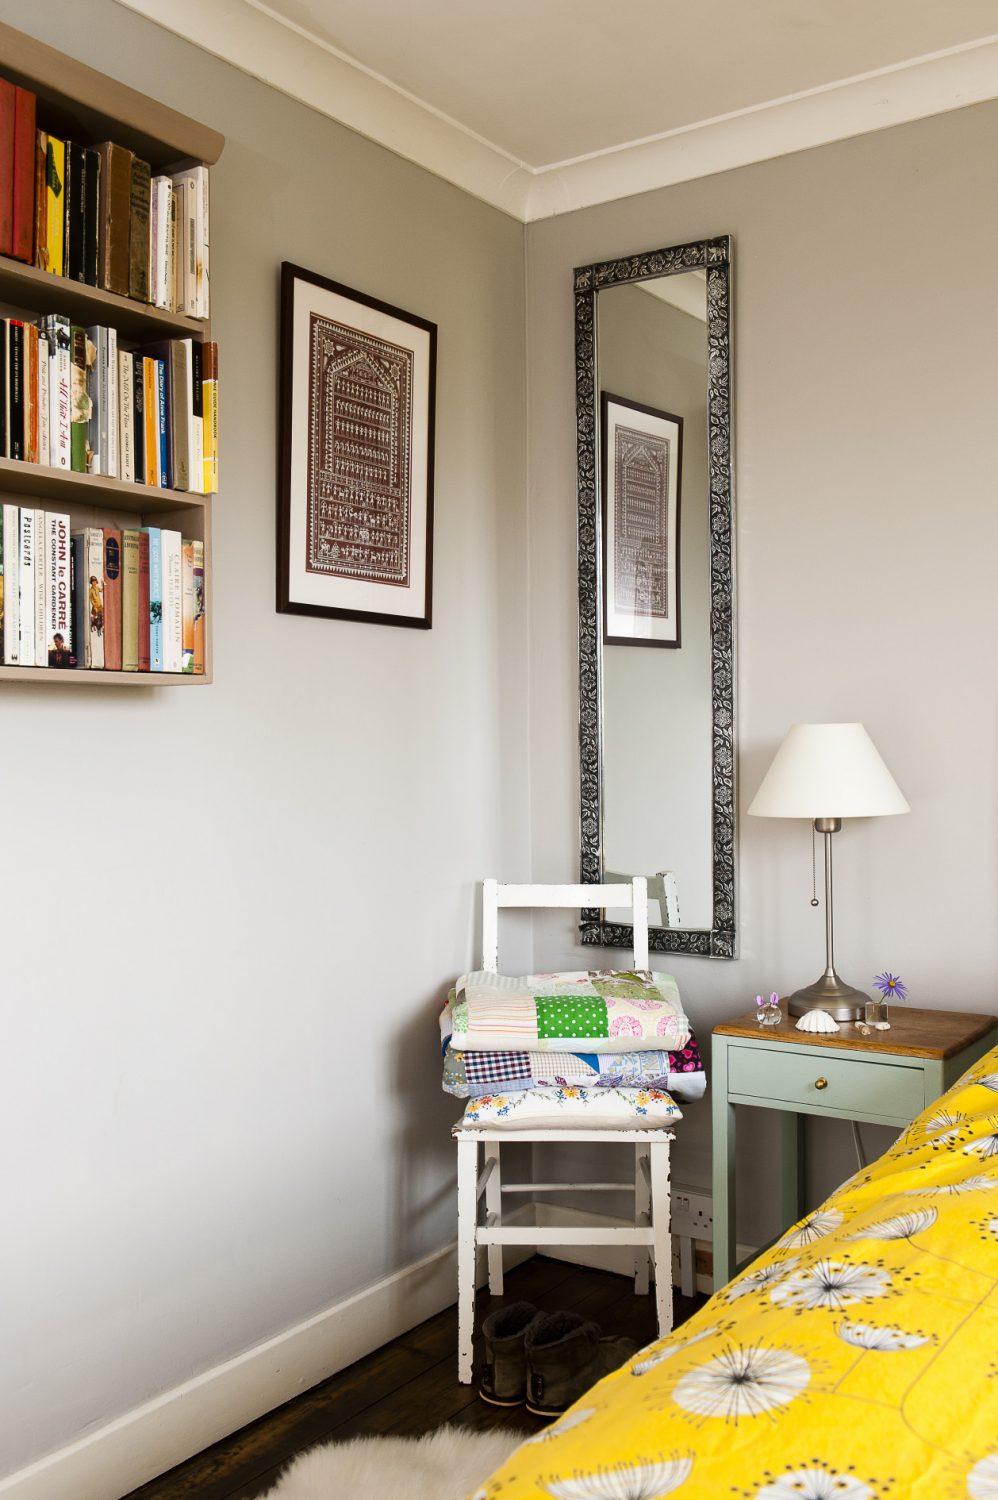 Patterned quilts are folded up on a bedside chair, ready for use when the weather gets cold